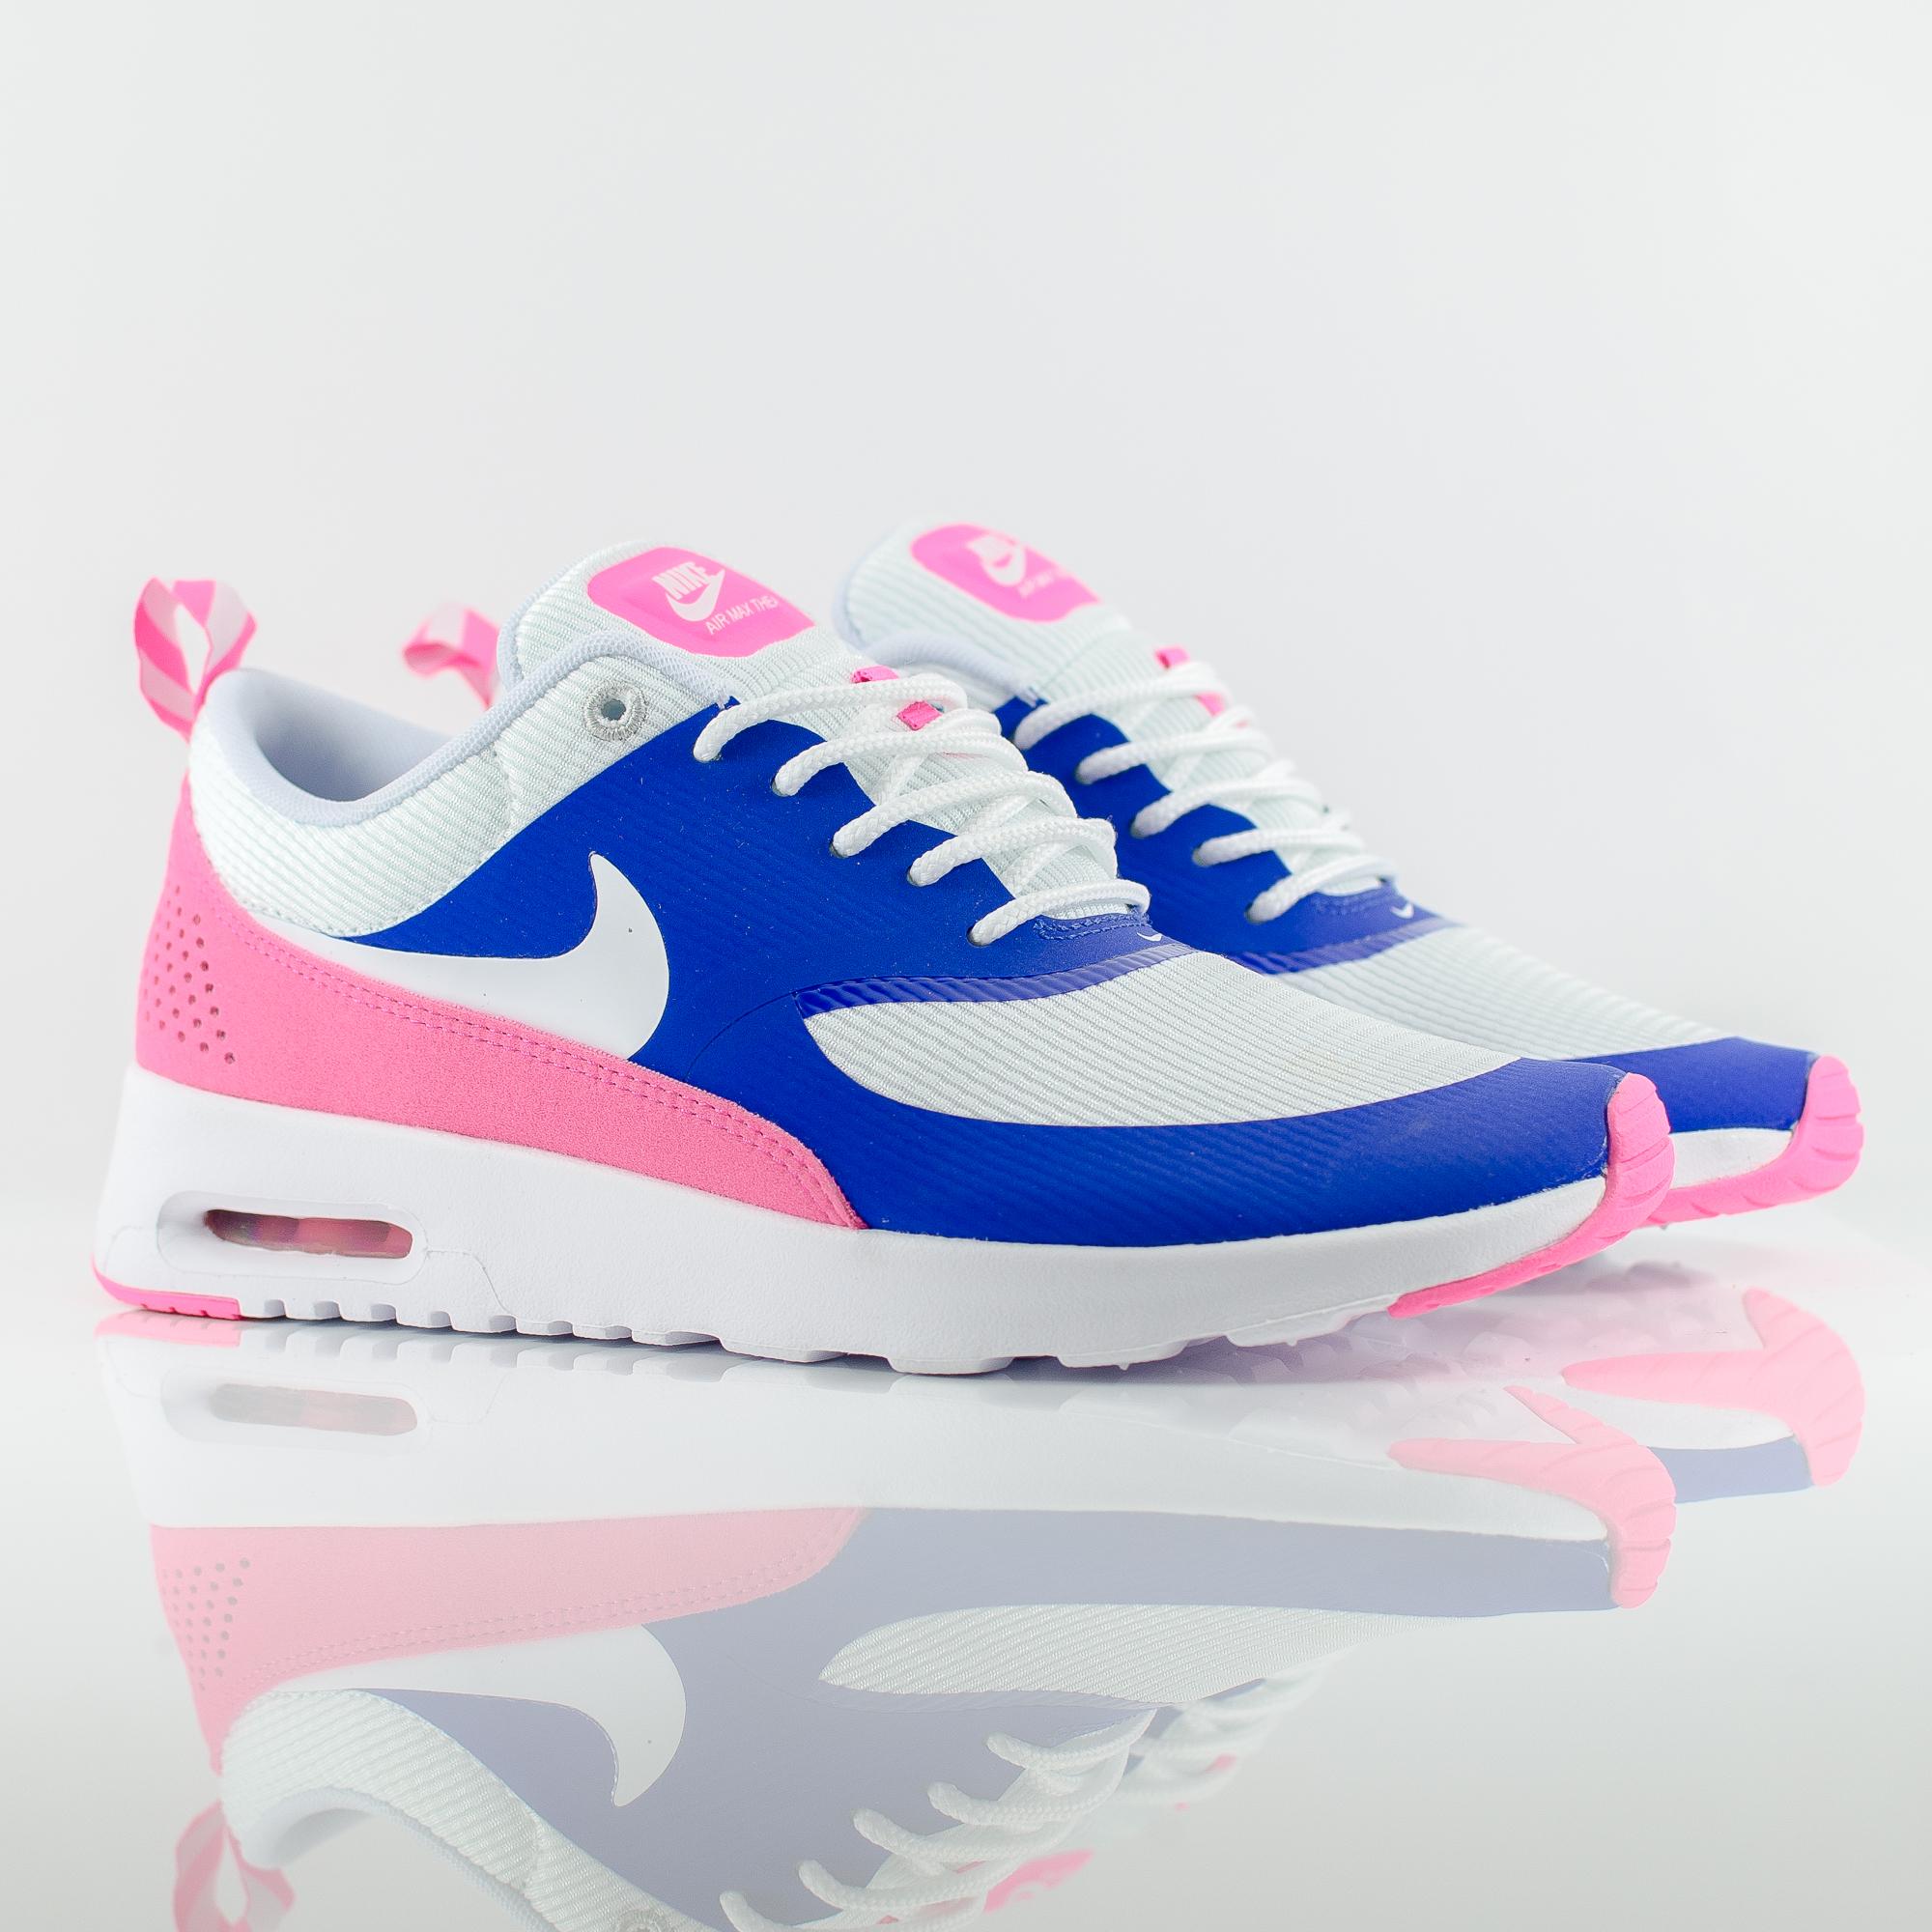 nike wmns air max thea deep royal blue hyper pink,nike air